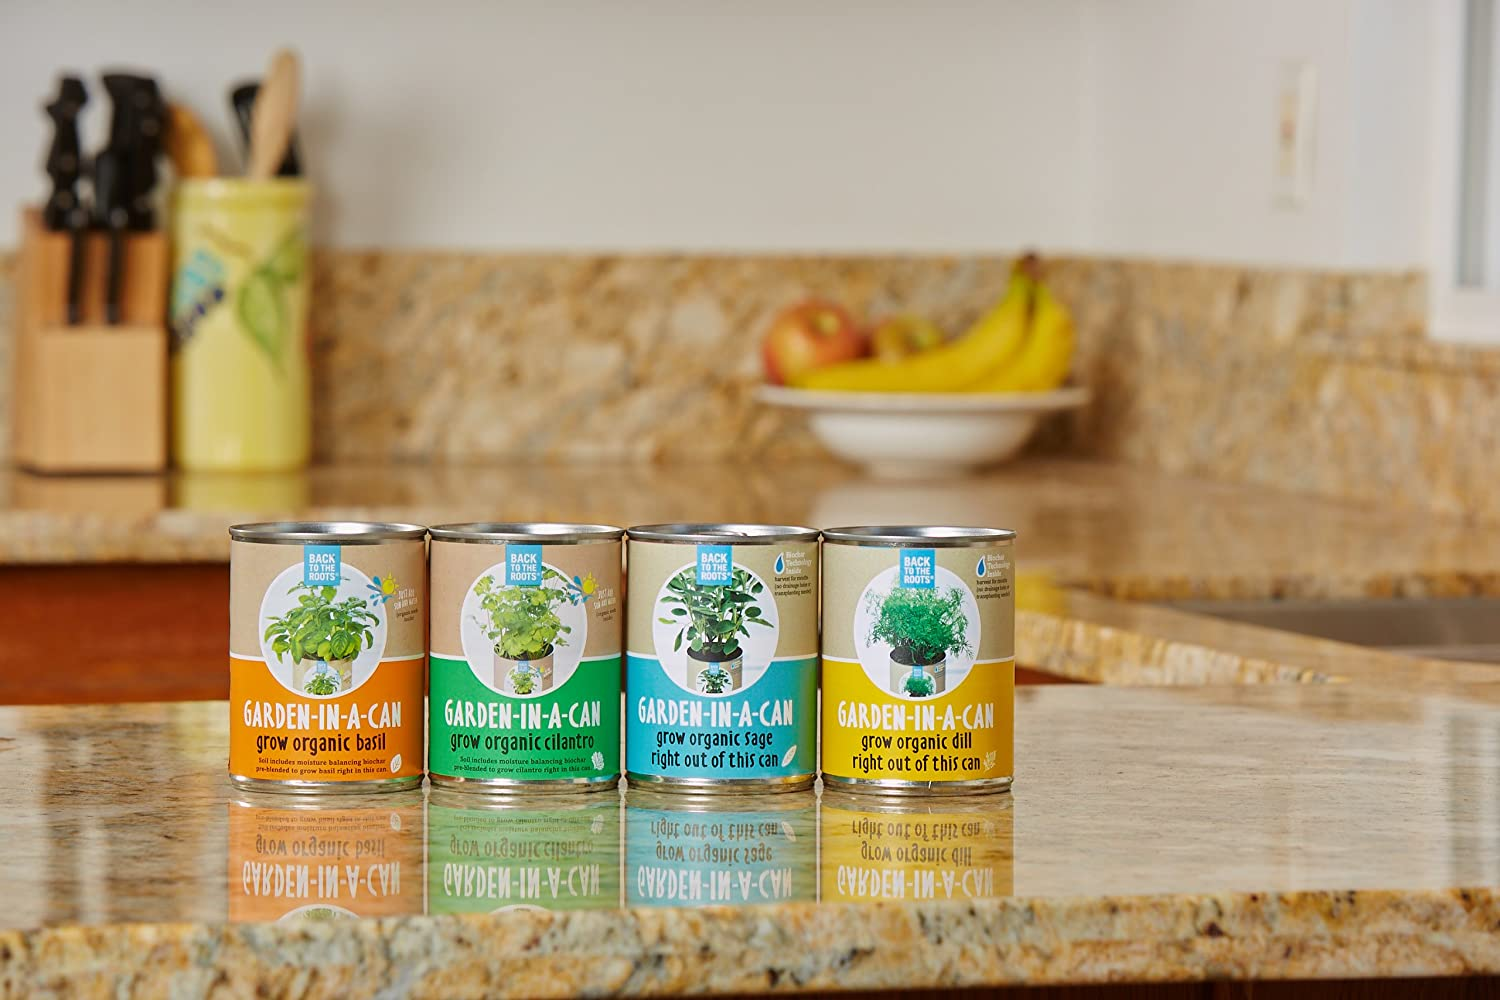 Amazon.com: Back to the Roots Garden-in-a-Can Grow Organic Herbs ...